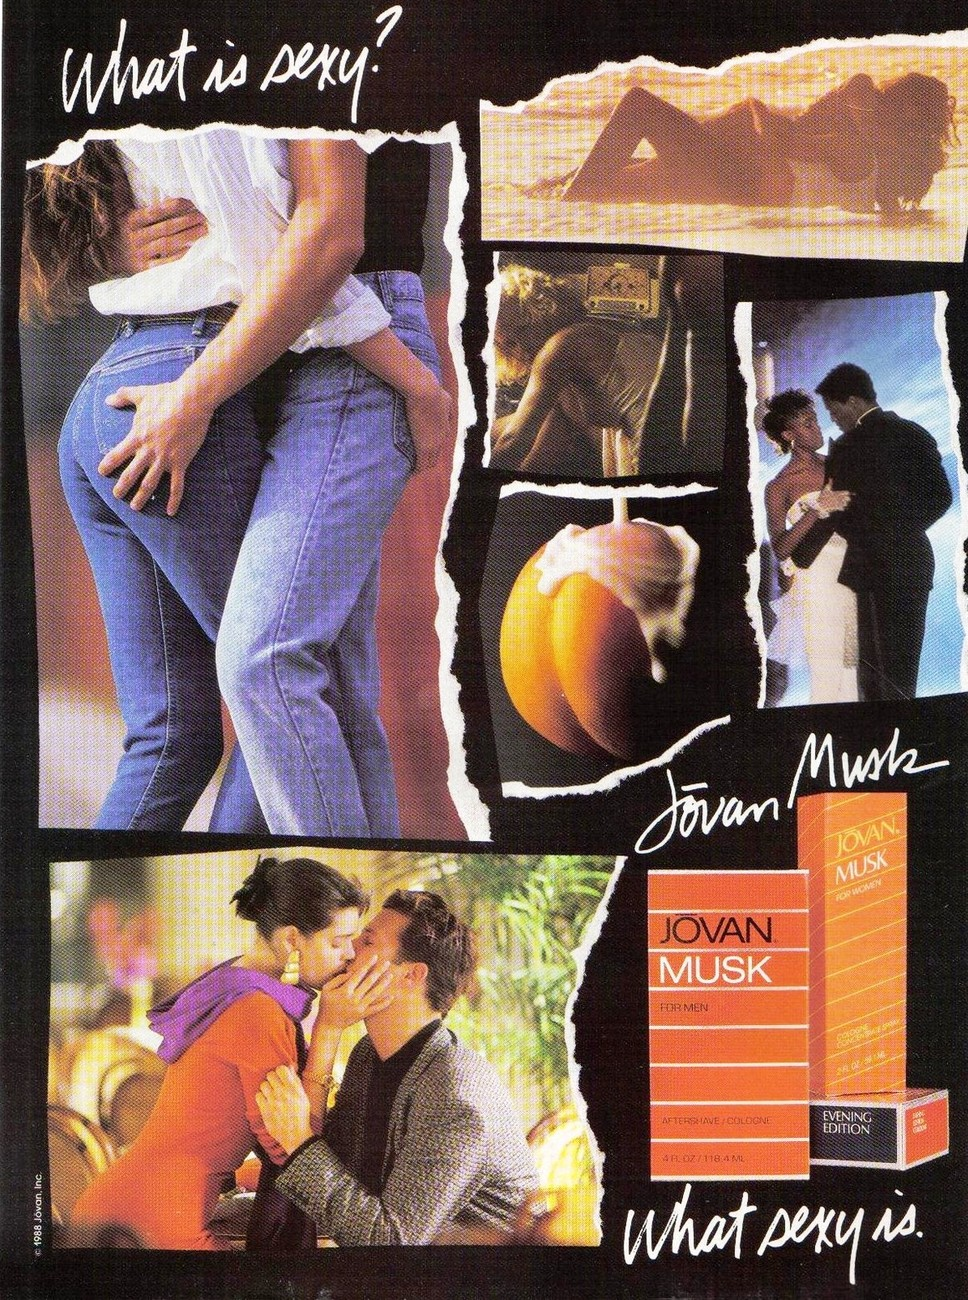 1988 Jovan Musk For Men Full Page Original Color Print Ad  What Is Sexy?  NM